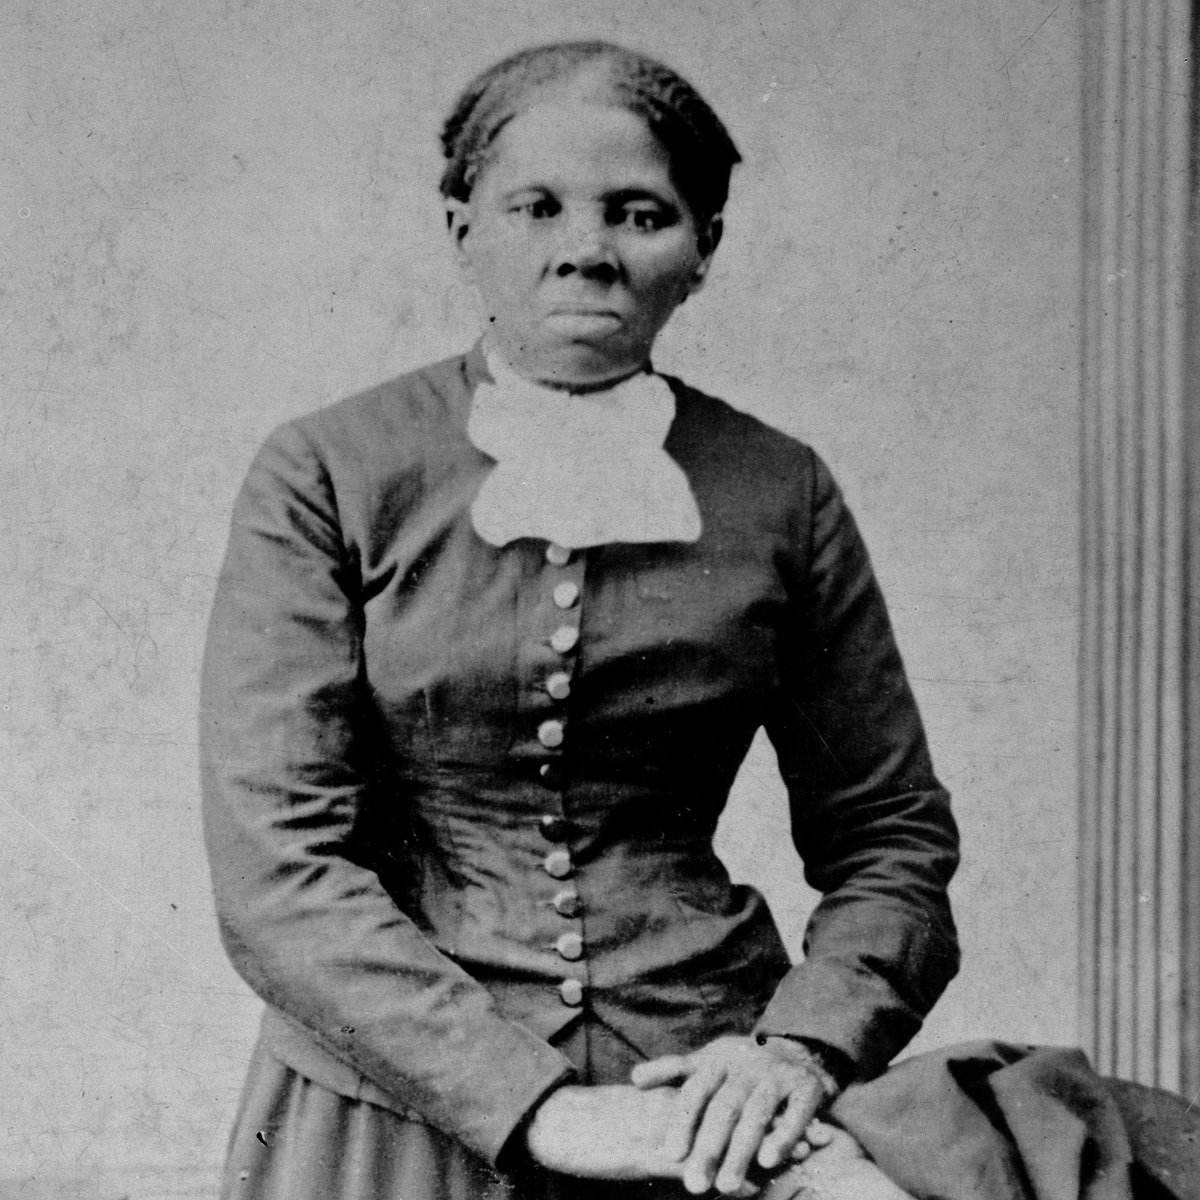 """Harriet Tubman, who escaped slavery only to return & fight the south, was approved to replace the racist Andrew Jackson on the $20 bill. #RacistTrump blocked it. So every time someone tries to give me a $20, I say """"two Hamilton's please."""" Retweet and support!"""